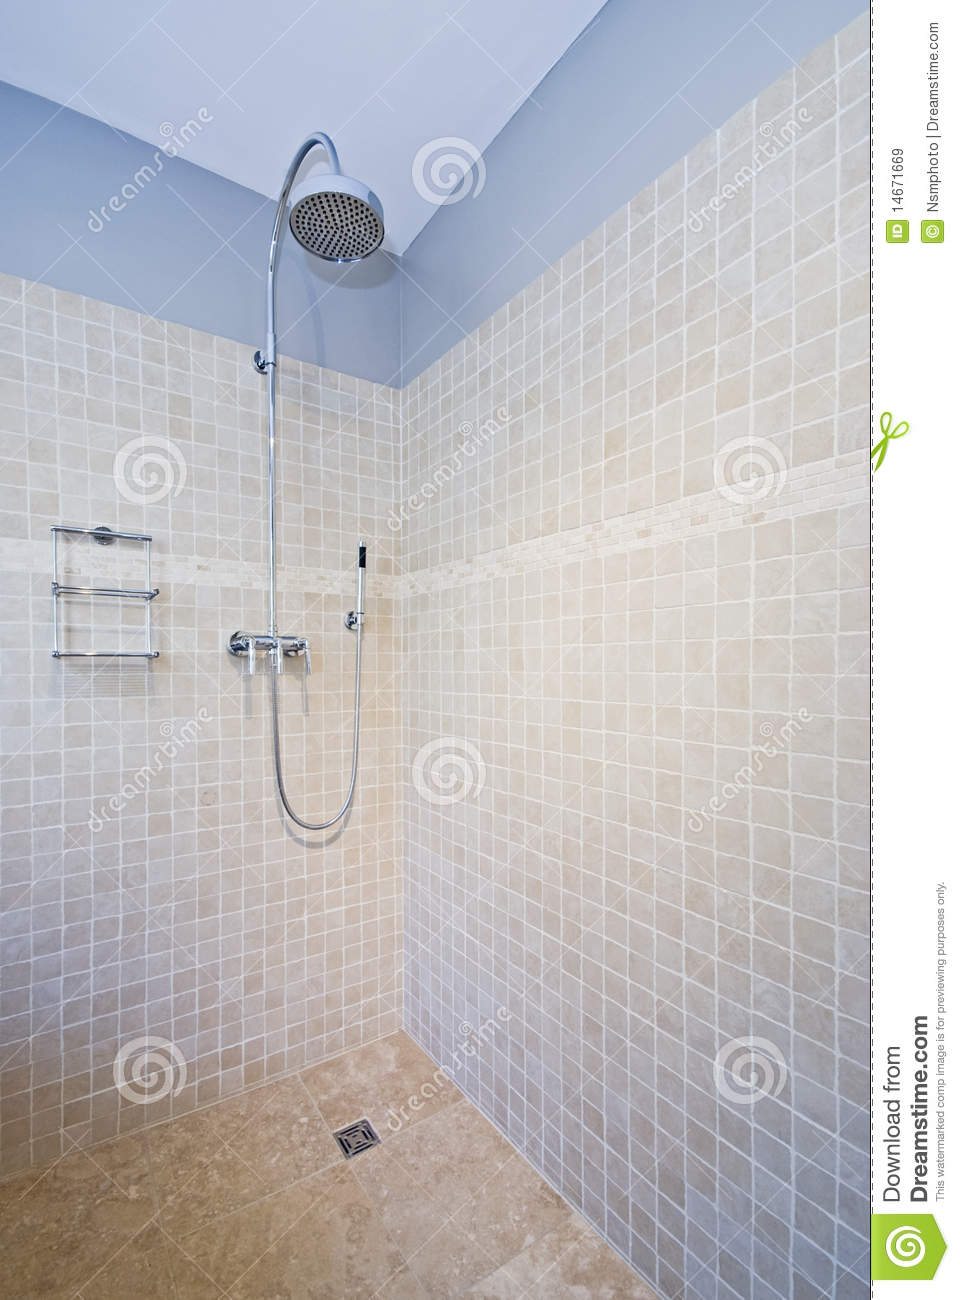 Contemporary Shower With Natural Stone Tiles Stock Image - Image of ...